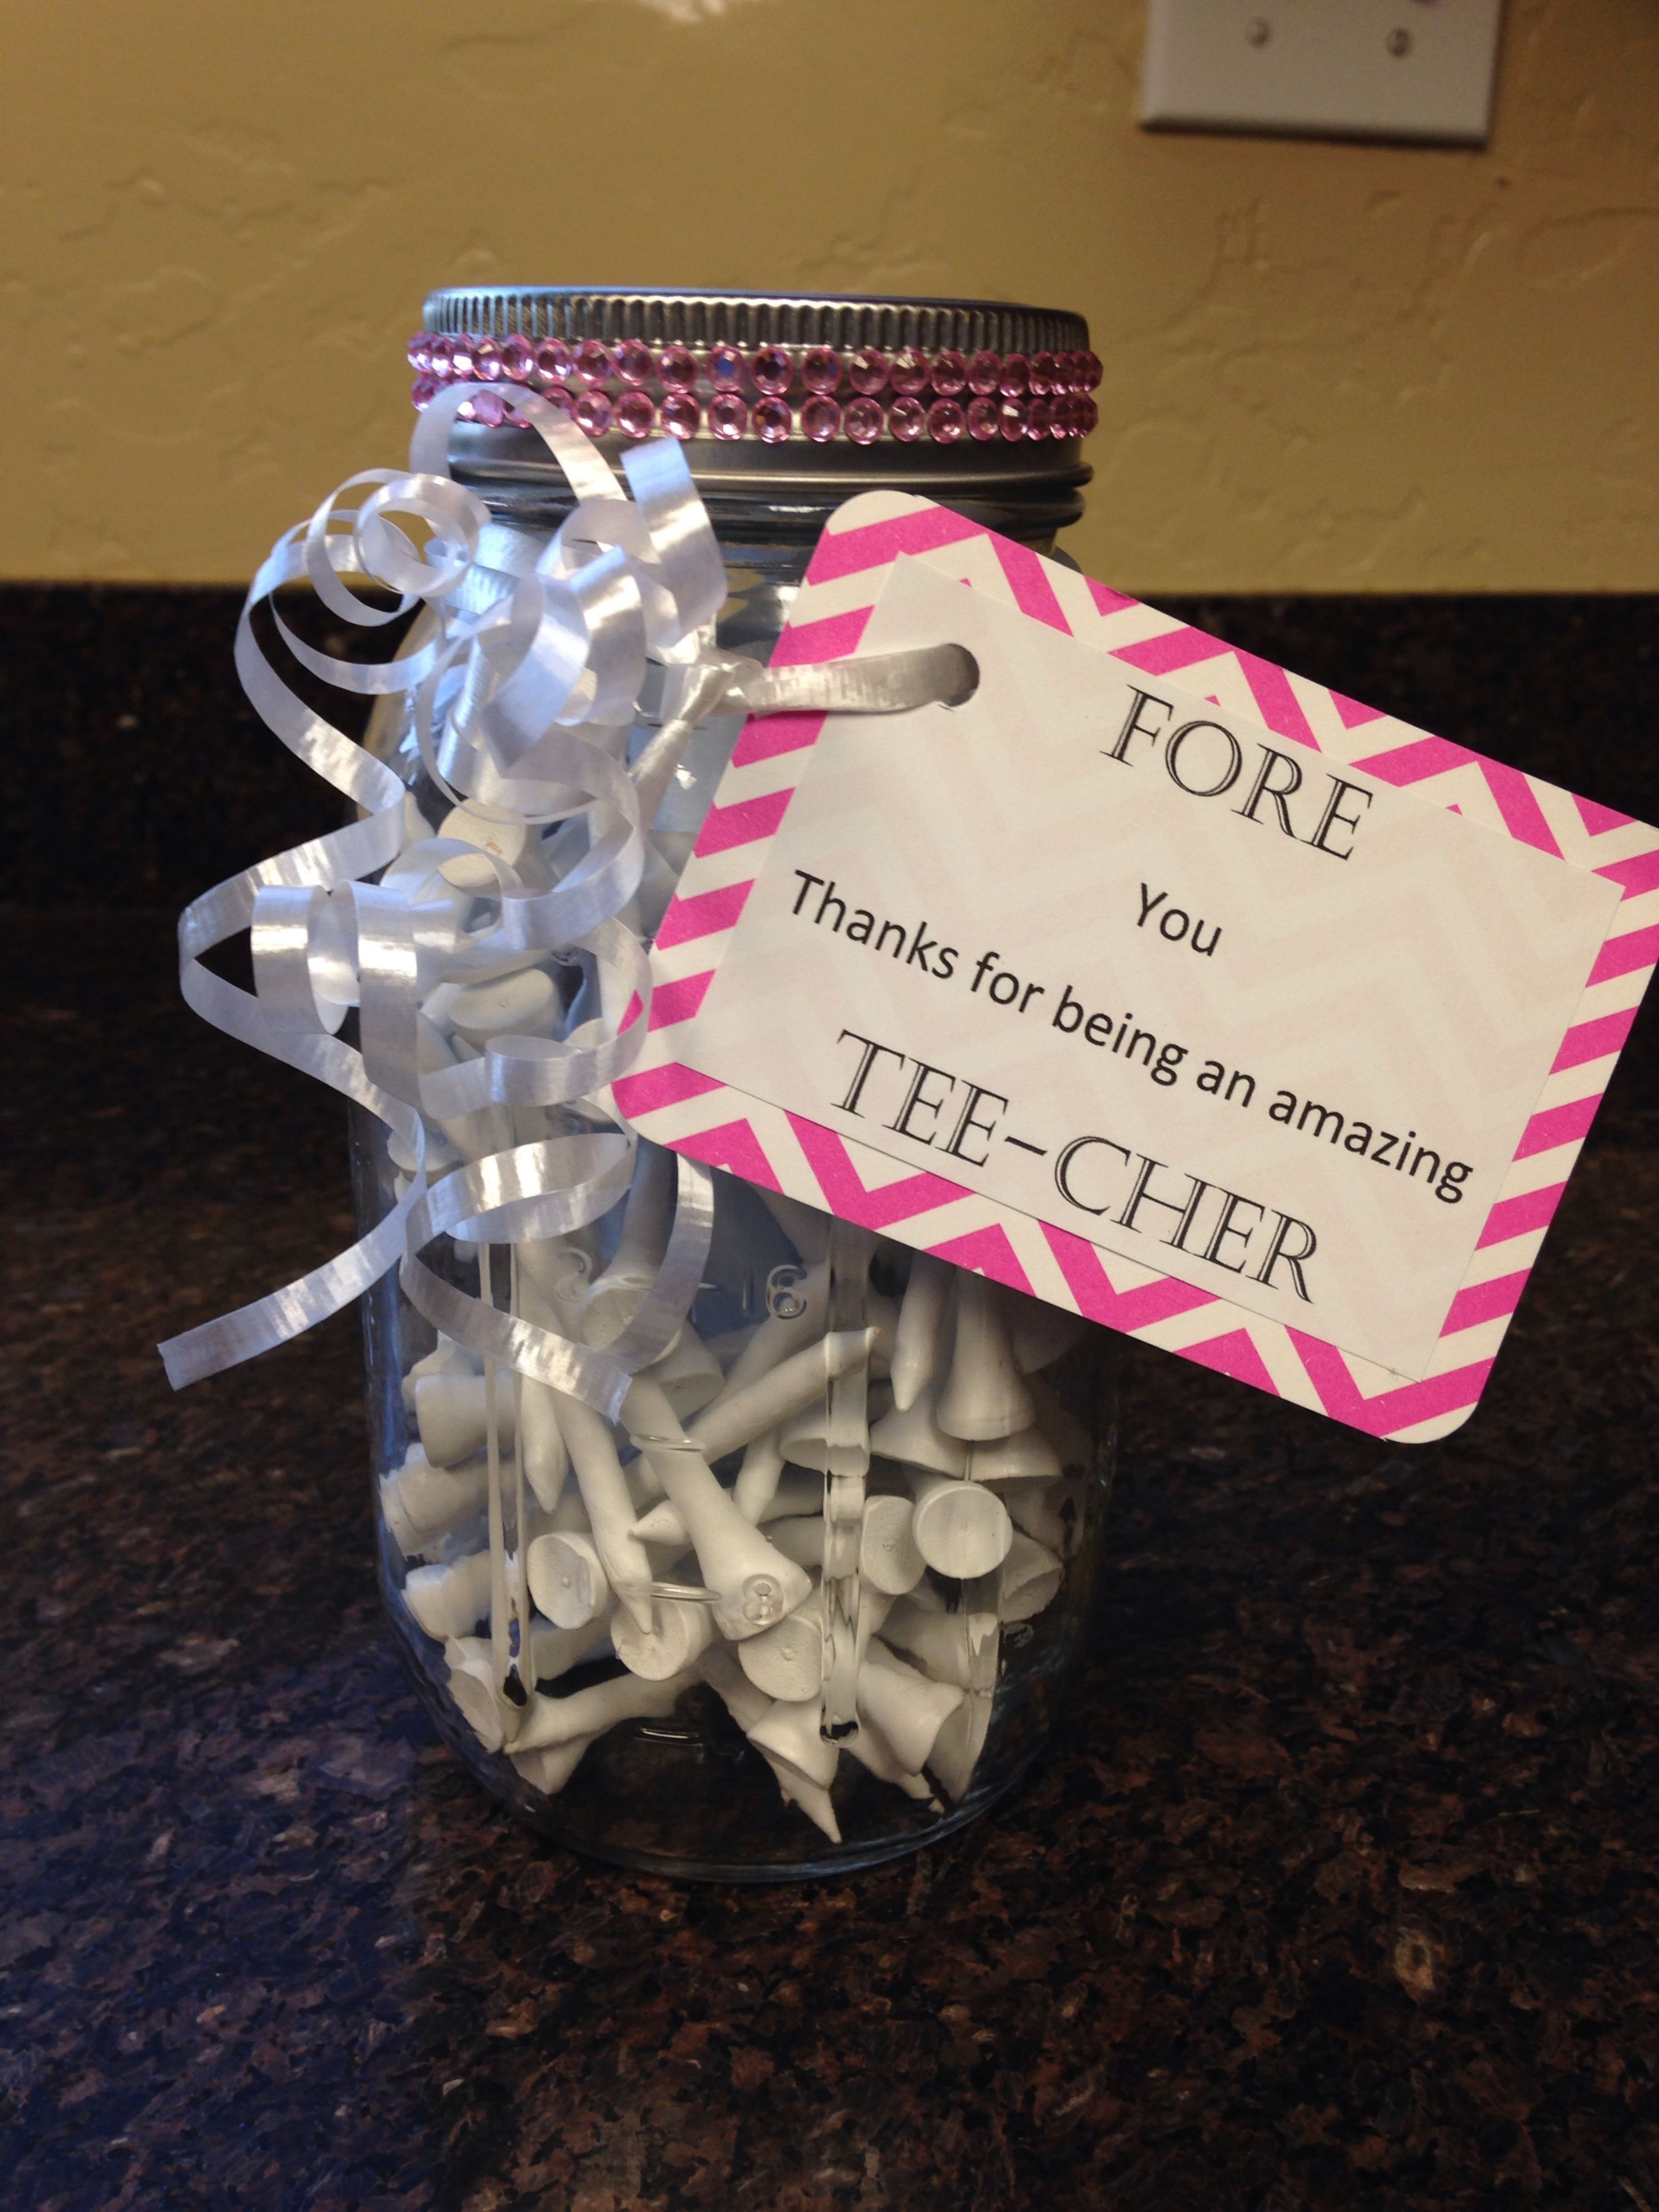 For my daughter's teacher.  A gift certificate to the local golf course inside the mason jar.